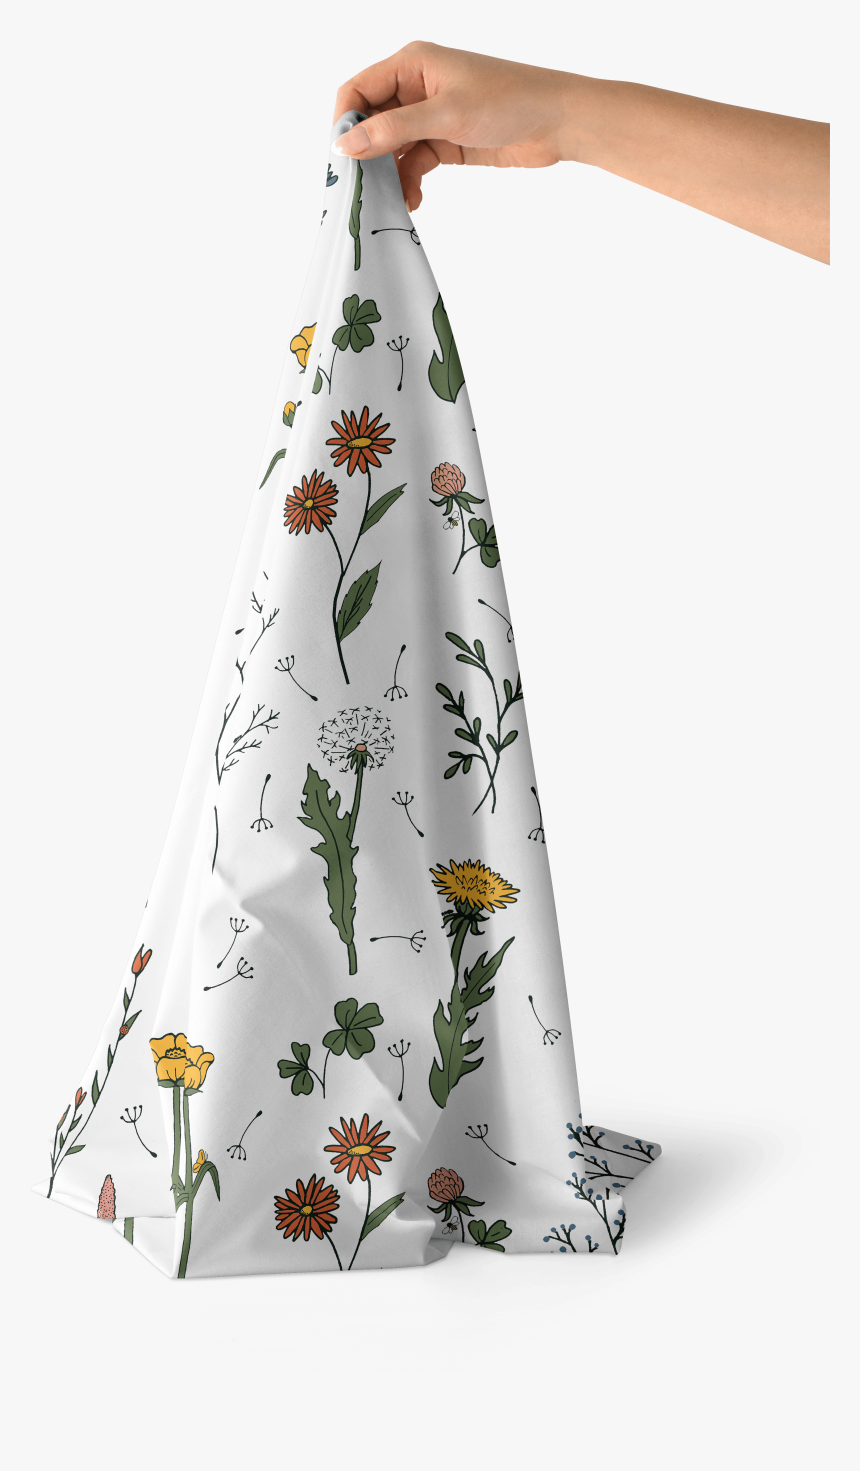 Wildflower Surprise Cotton Poplin Fabric For Project - Towel, HD Png Download, Free Download